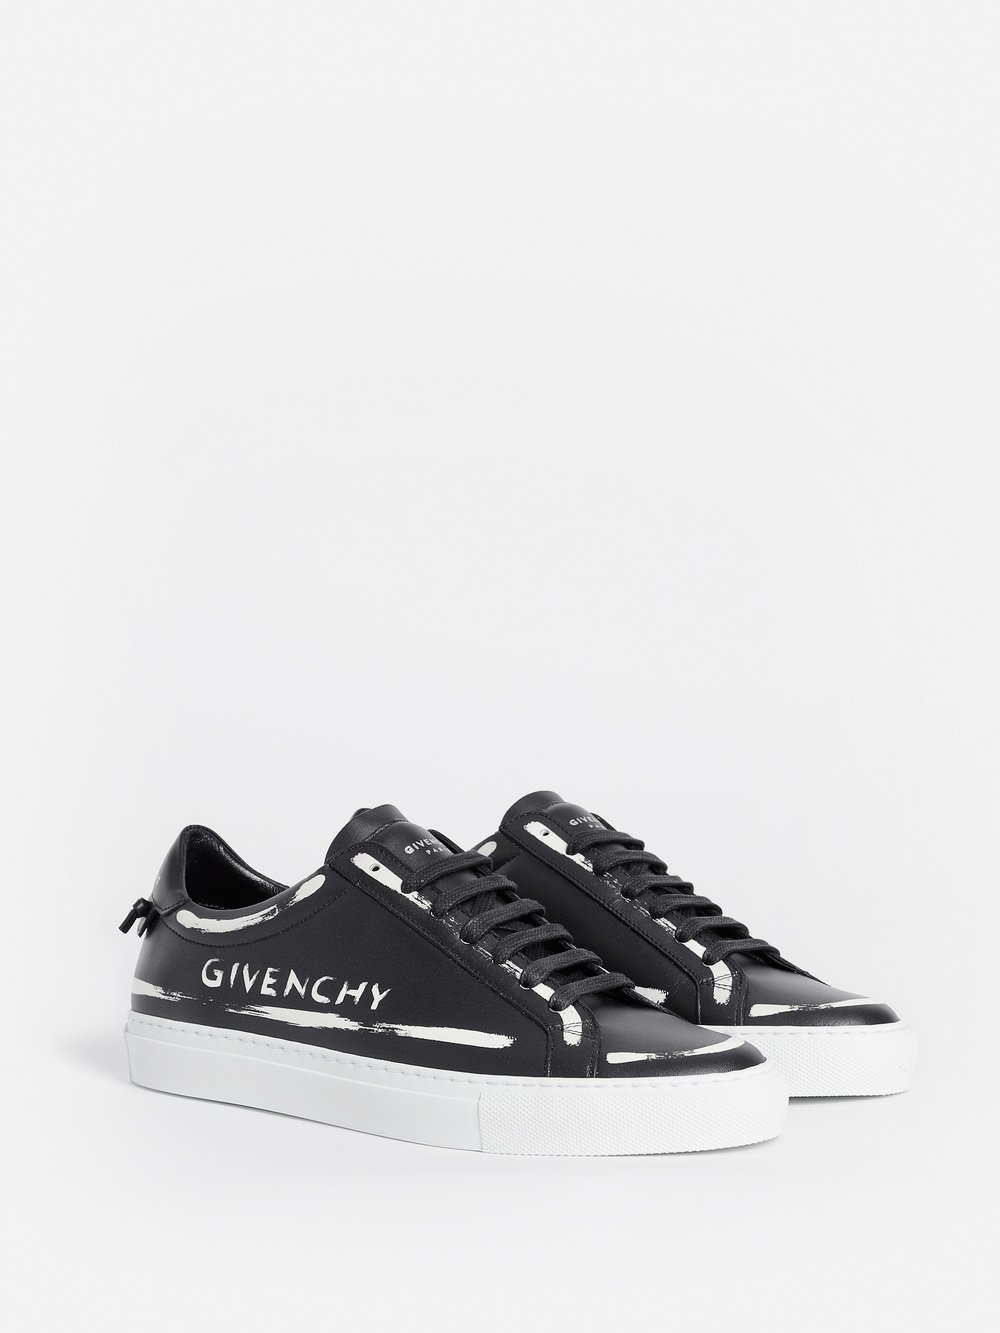 Givenchy Sneakers URBAN STREET leather grafitti white MG1l6llb